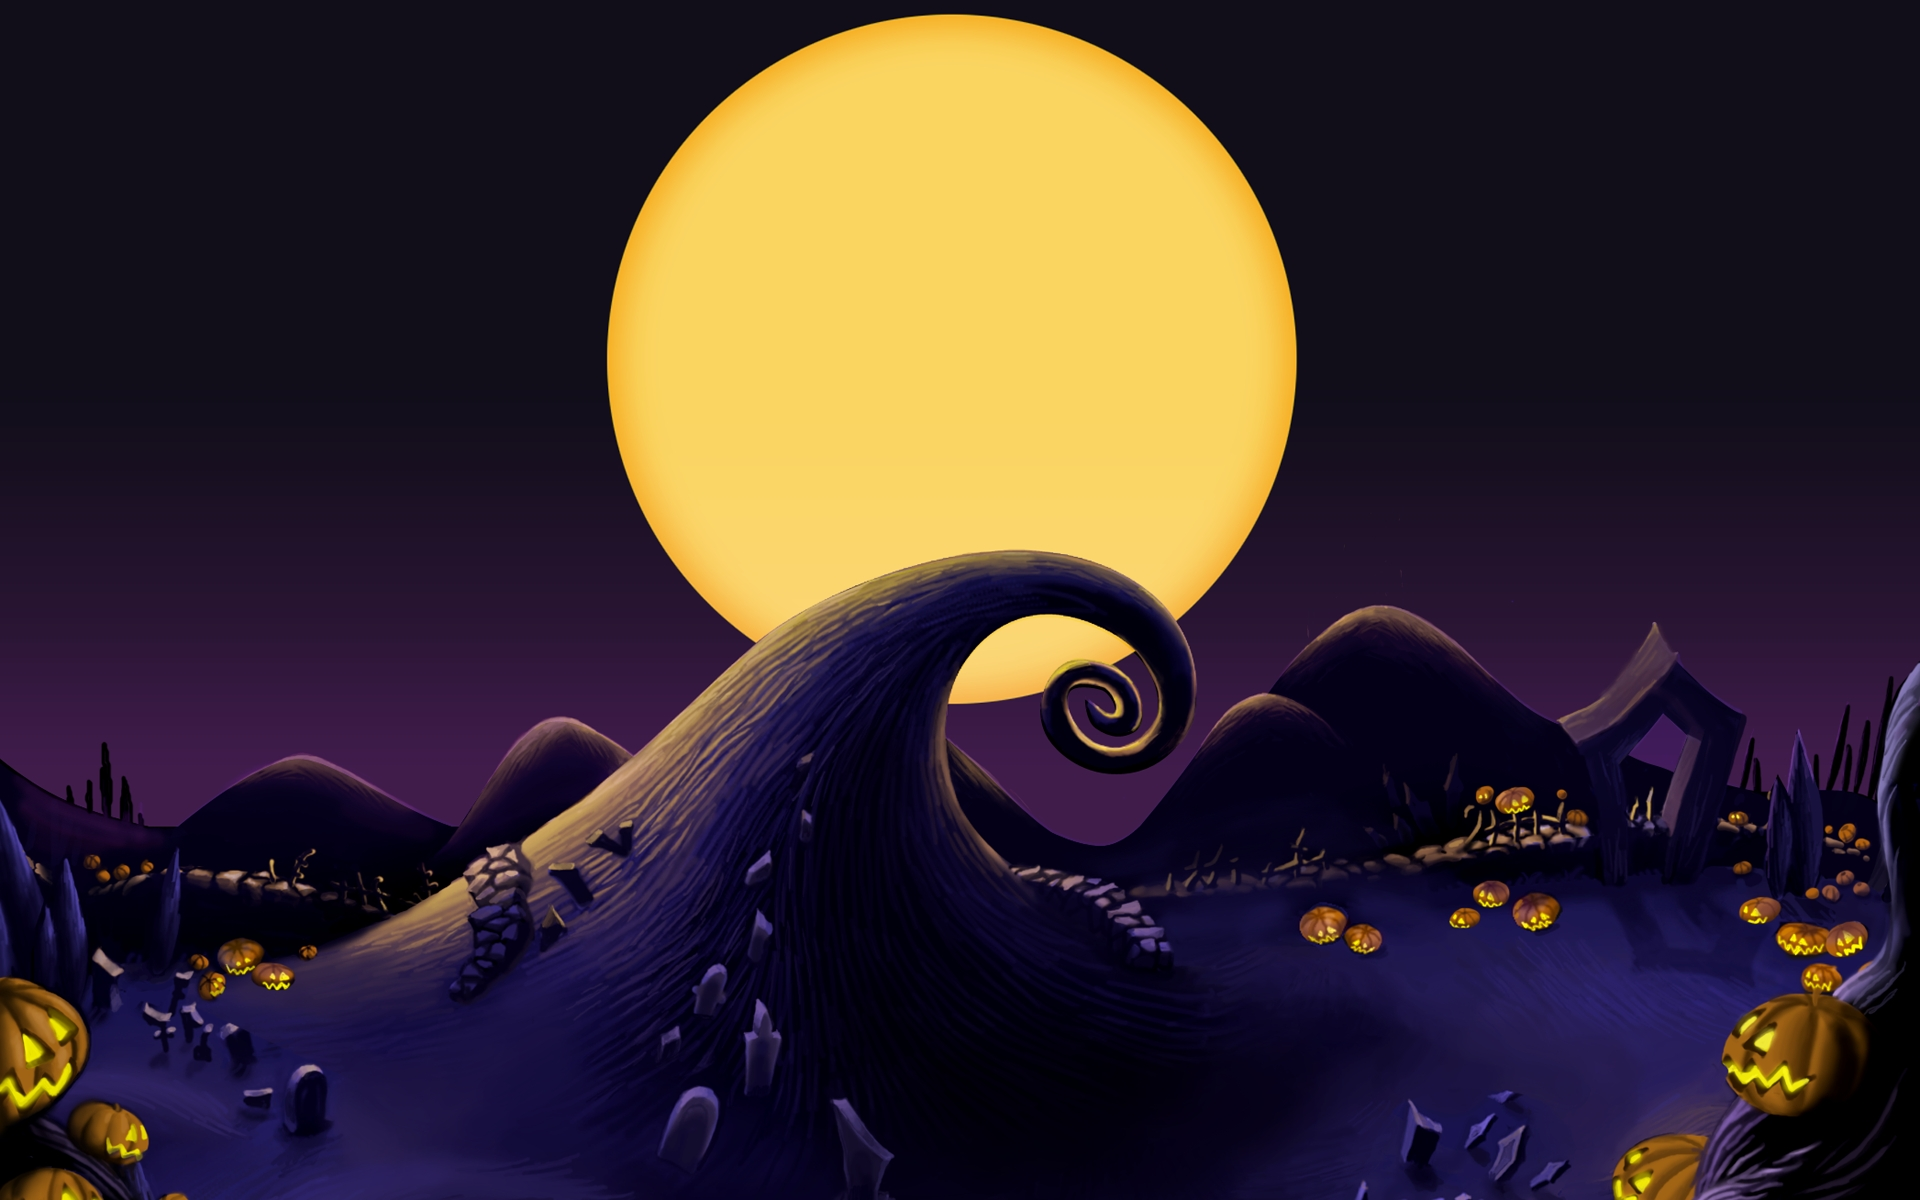 top wallpapers 2016: the nightmare before christmas wallpapers, best